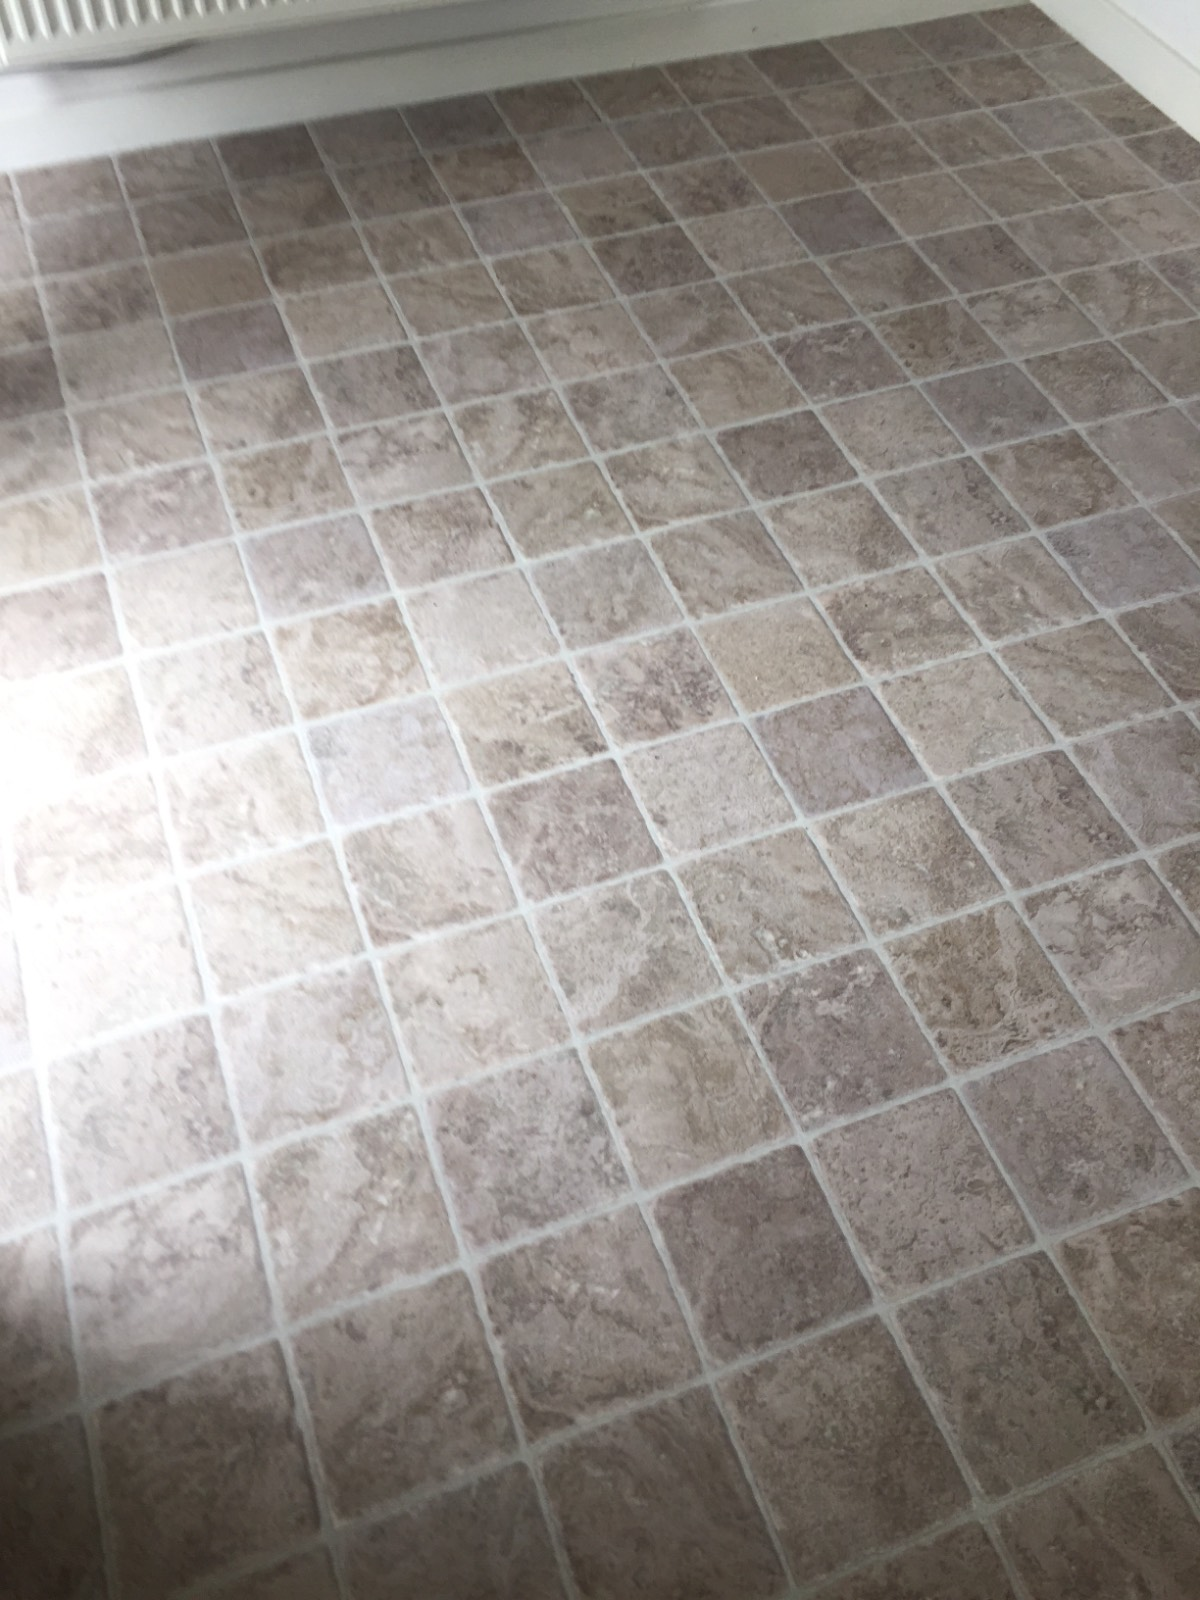 light brown vinyl flooring with tile design in kitchen